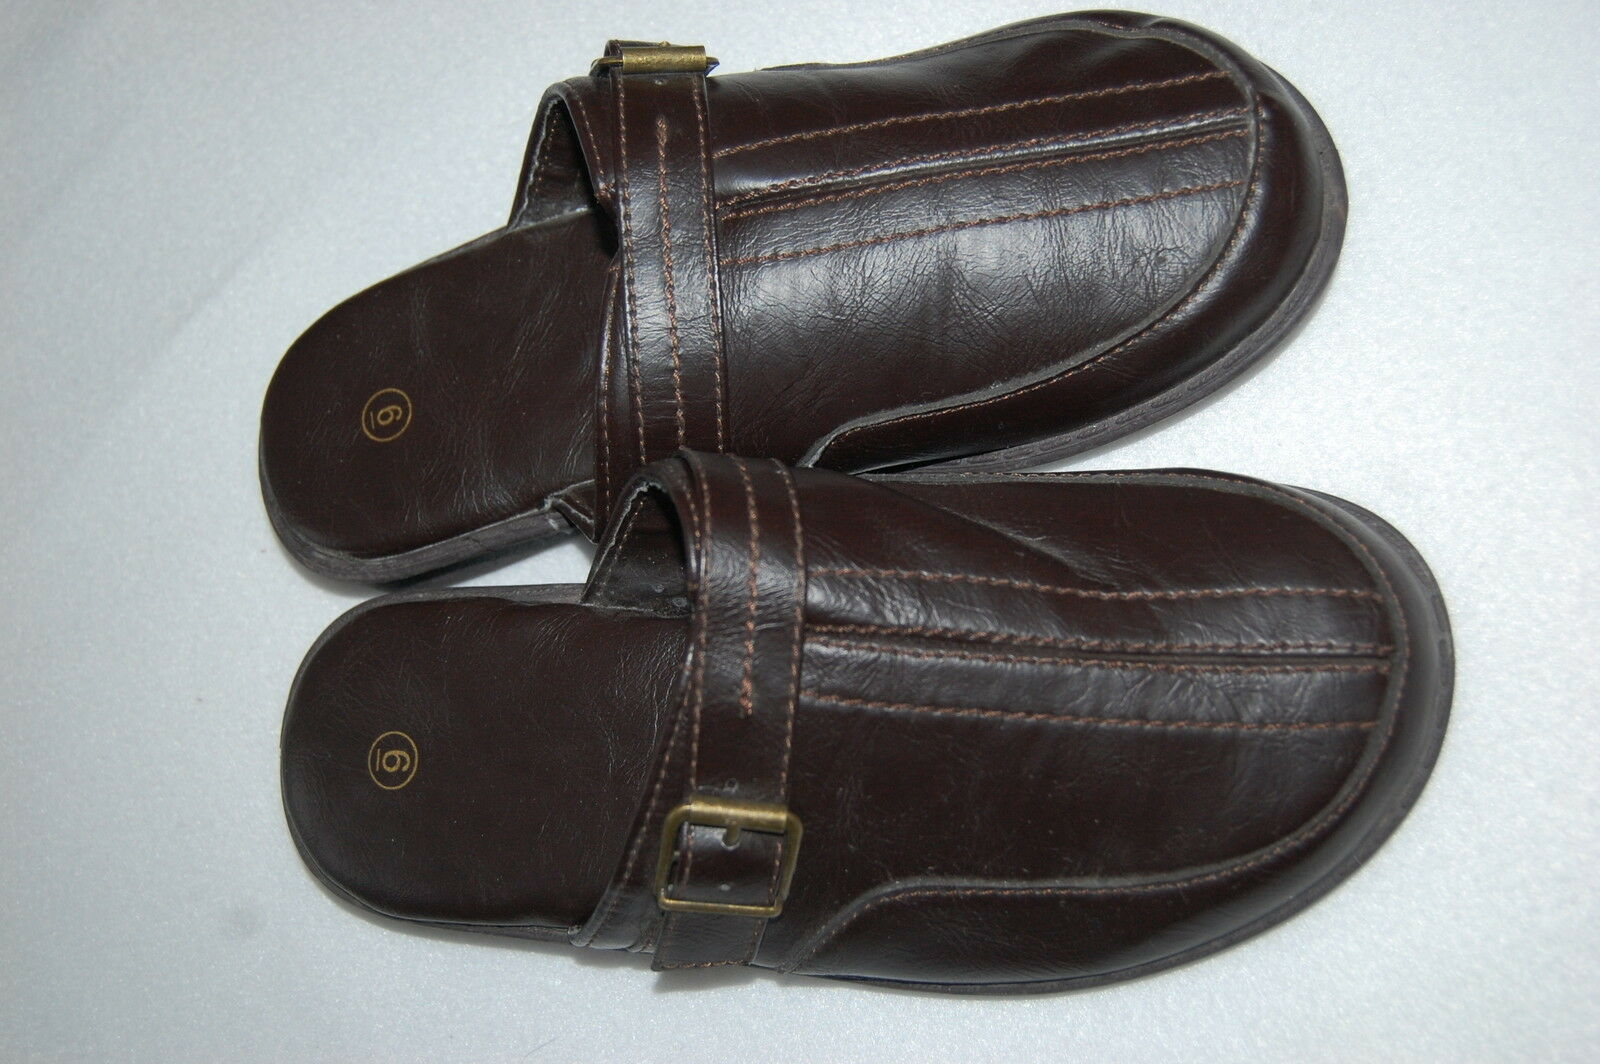 Womens Shoes BROWN SLIP ON CLOGS Mock Leather ADJ BUCKLE Padded Insole SIZE 6